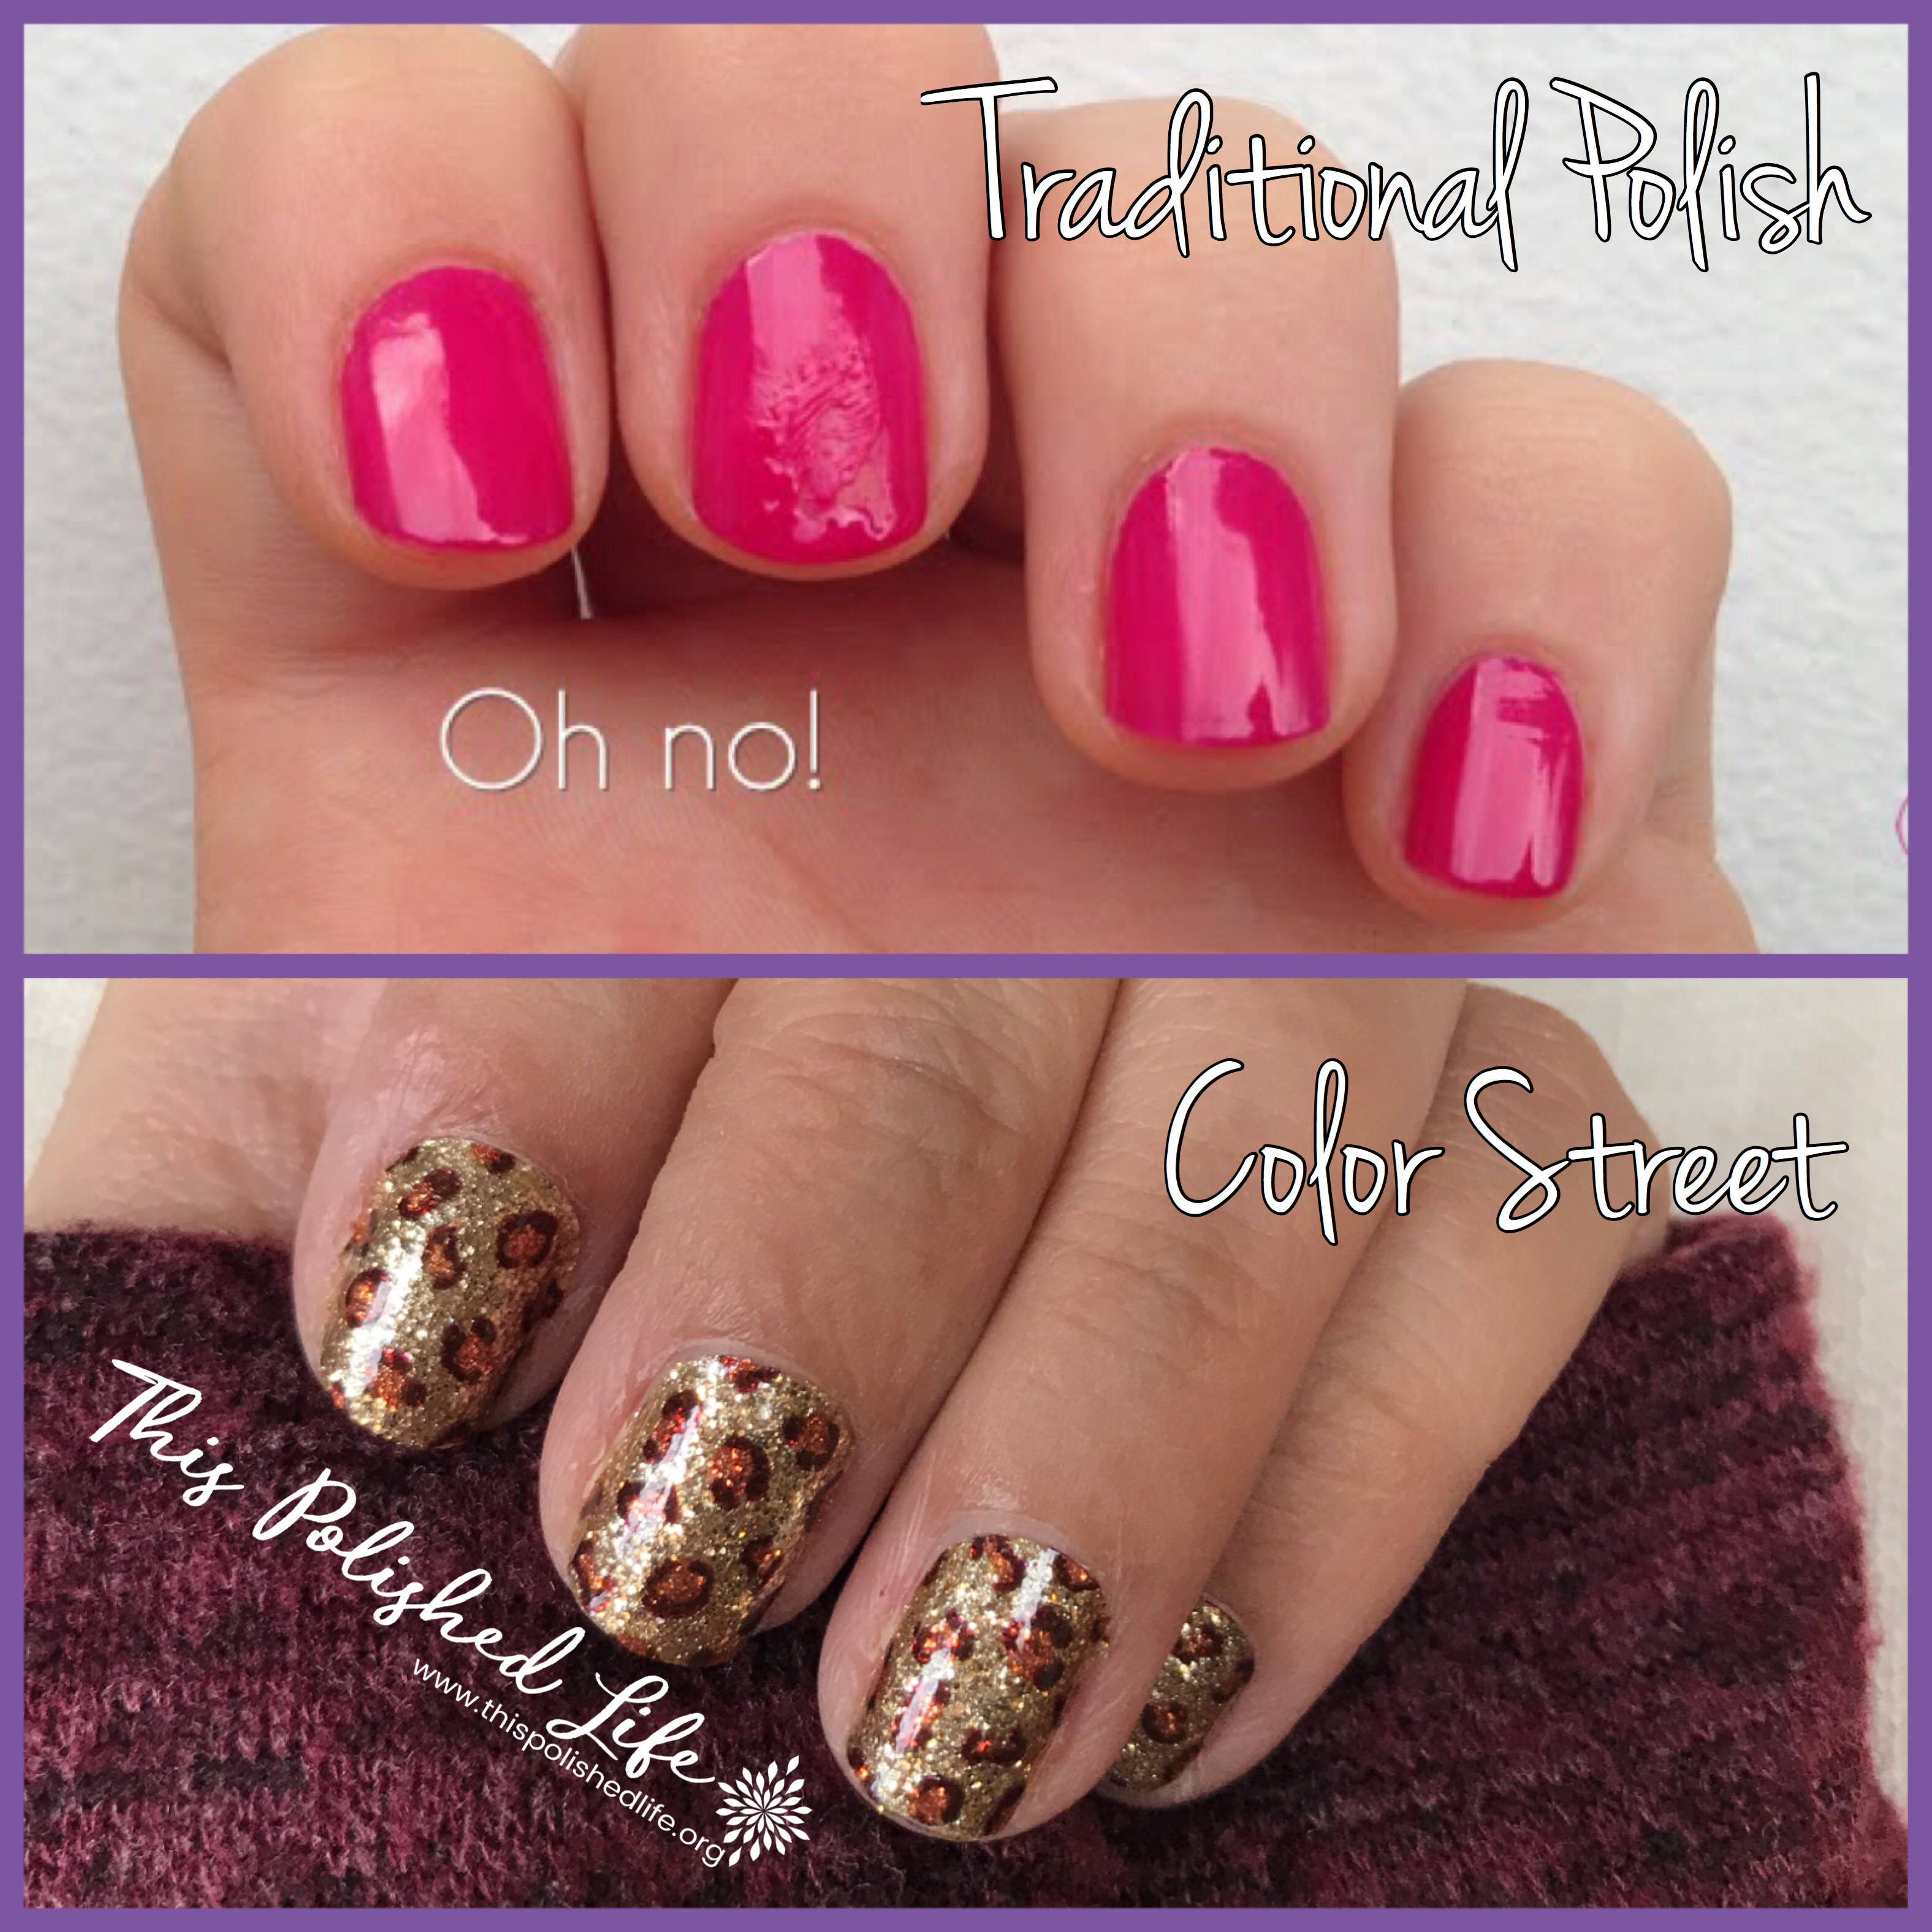 What do you hate about traditional polish? Color Street nail polish ...